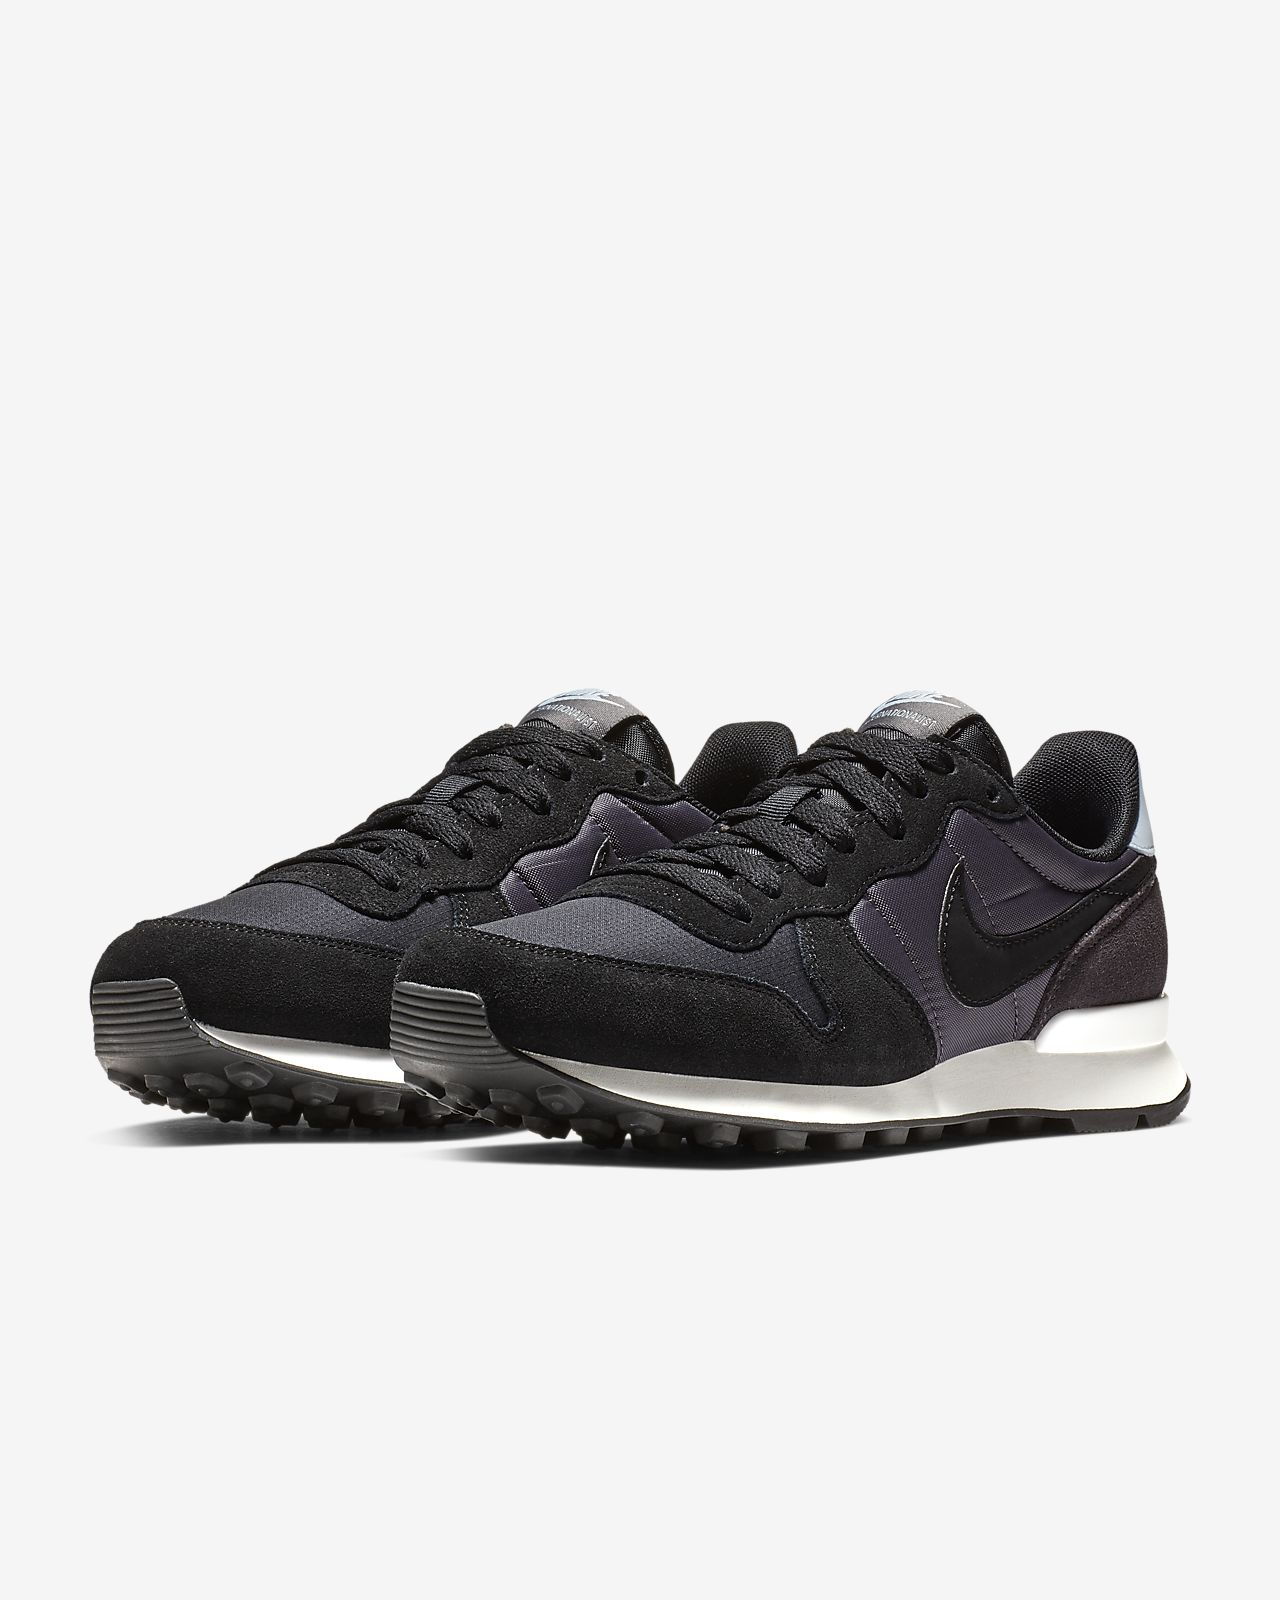 7f0f66ab8af Low Resolution Nike Internationalist Women s Shoe Nike Internationalist  Women s Shoe